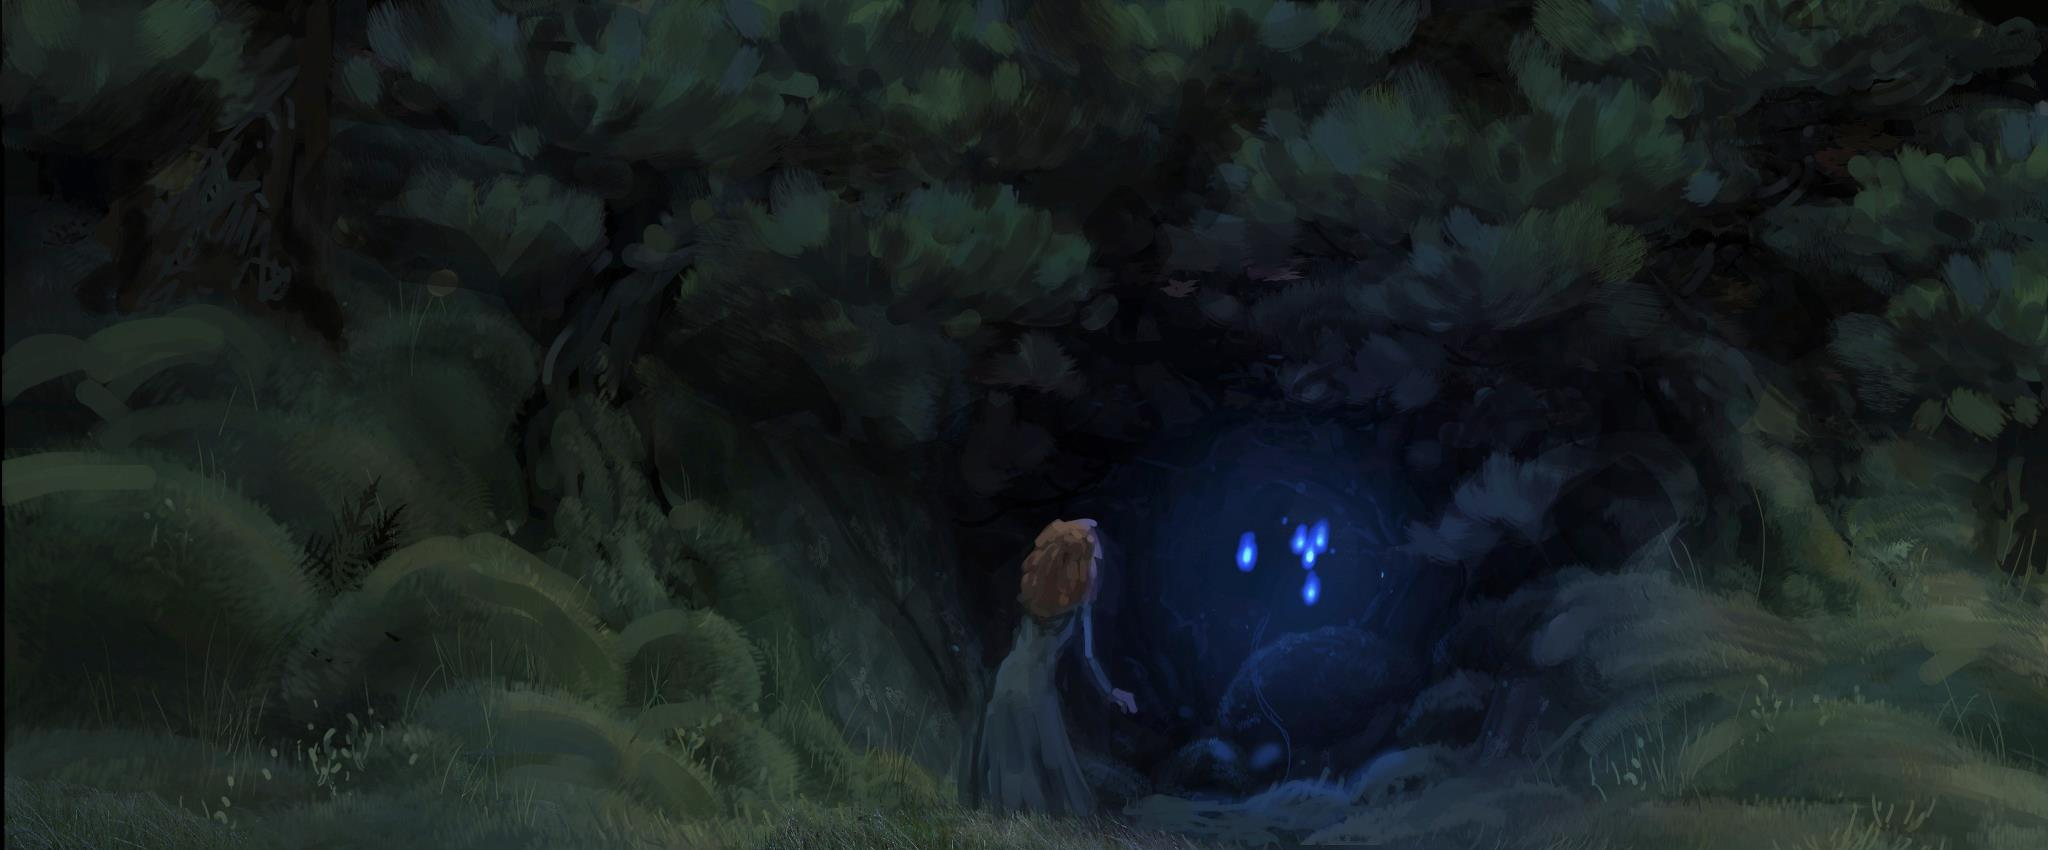 New 'Brave' Concept Art Features Mysterious Forest